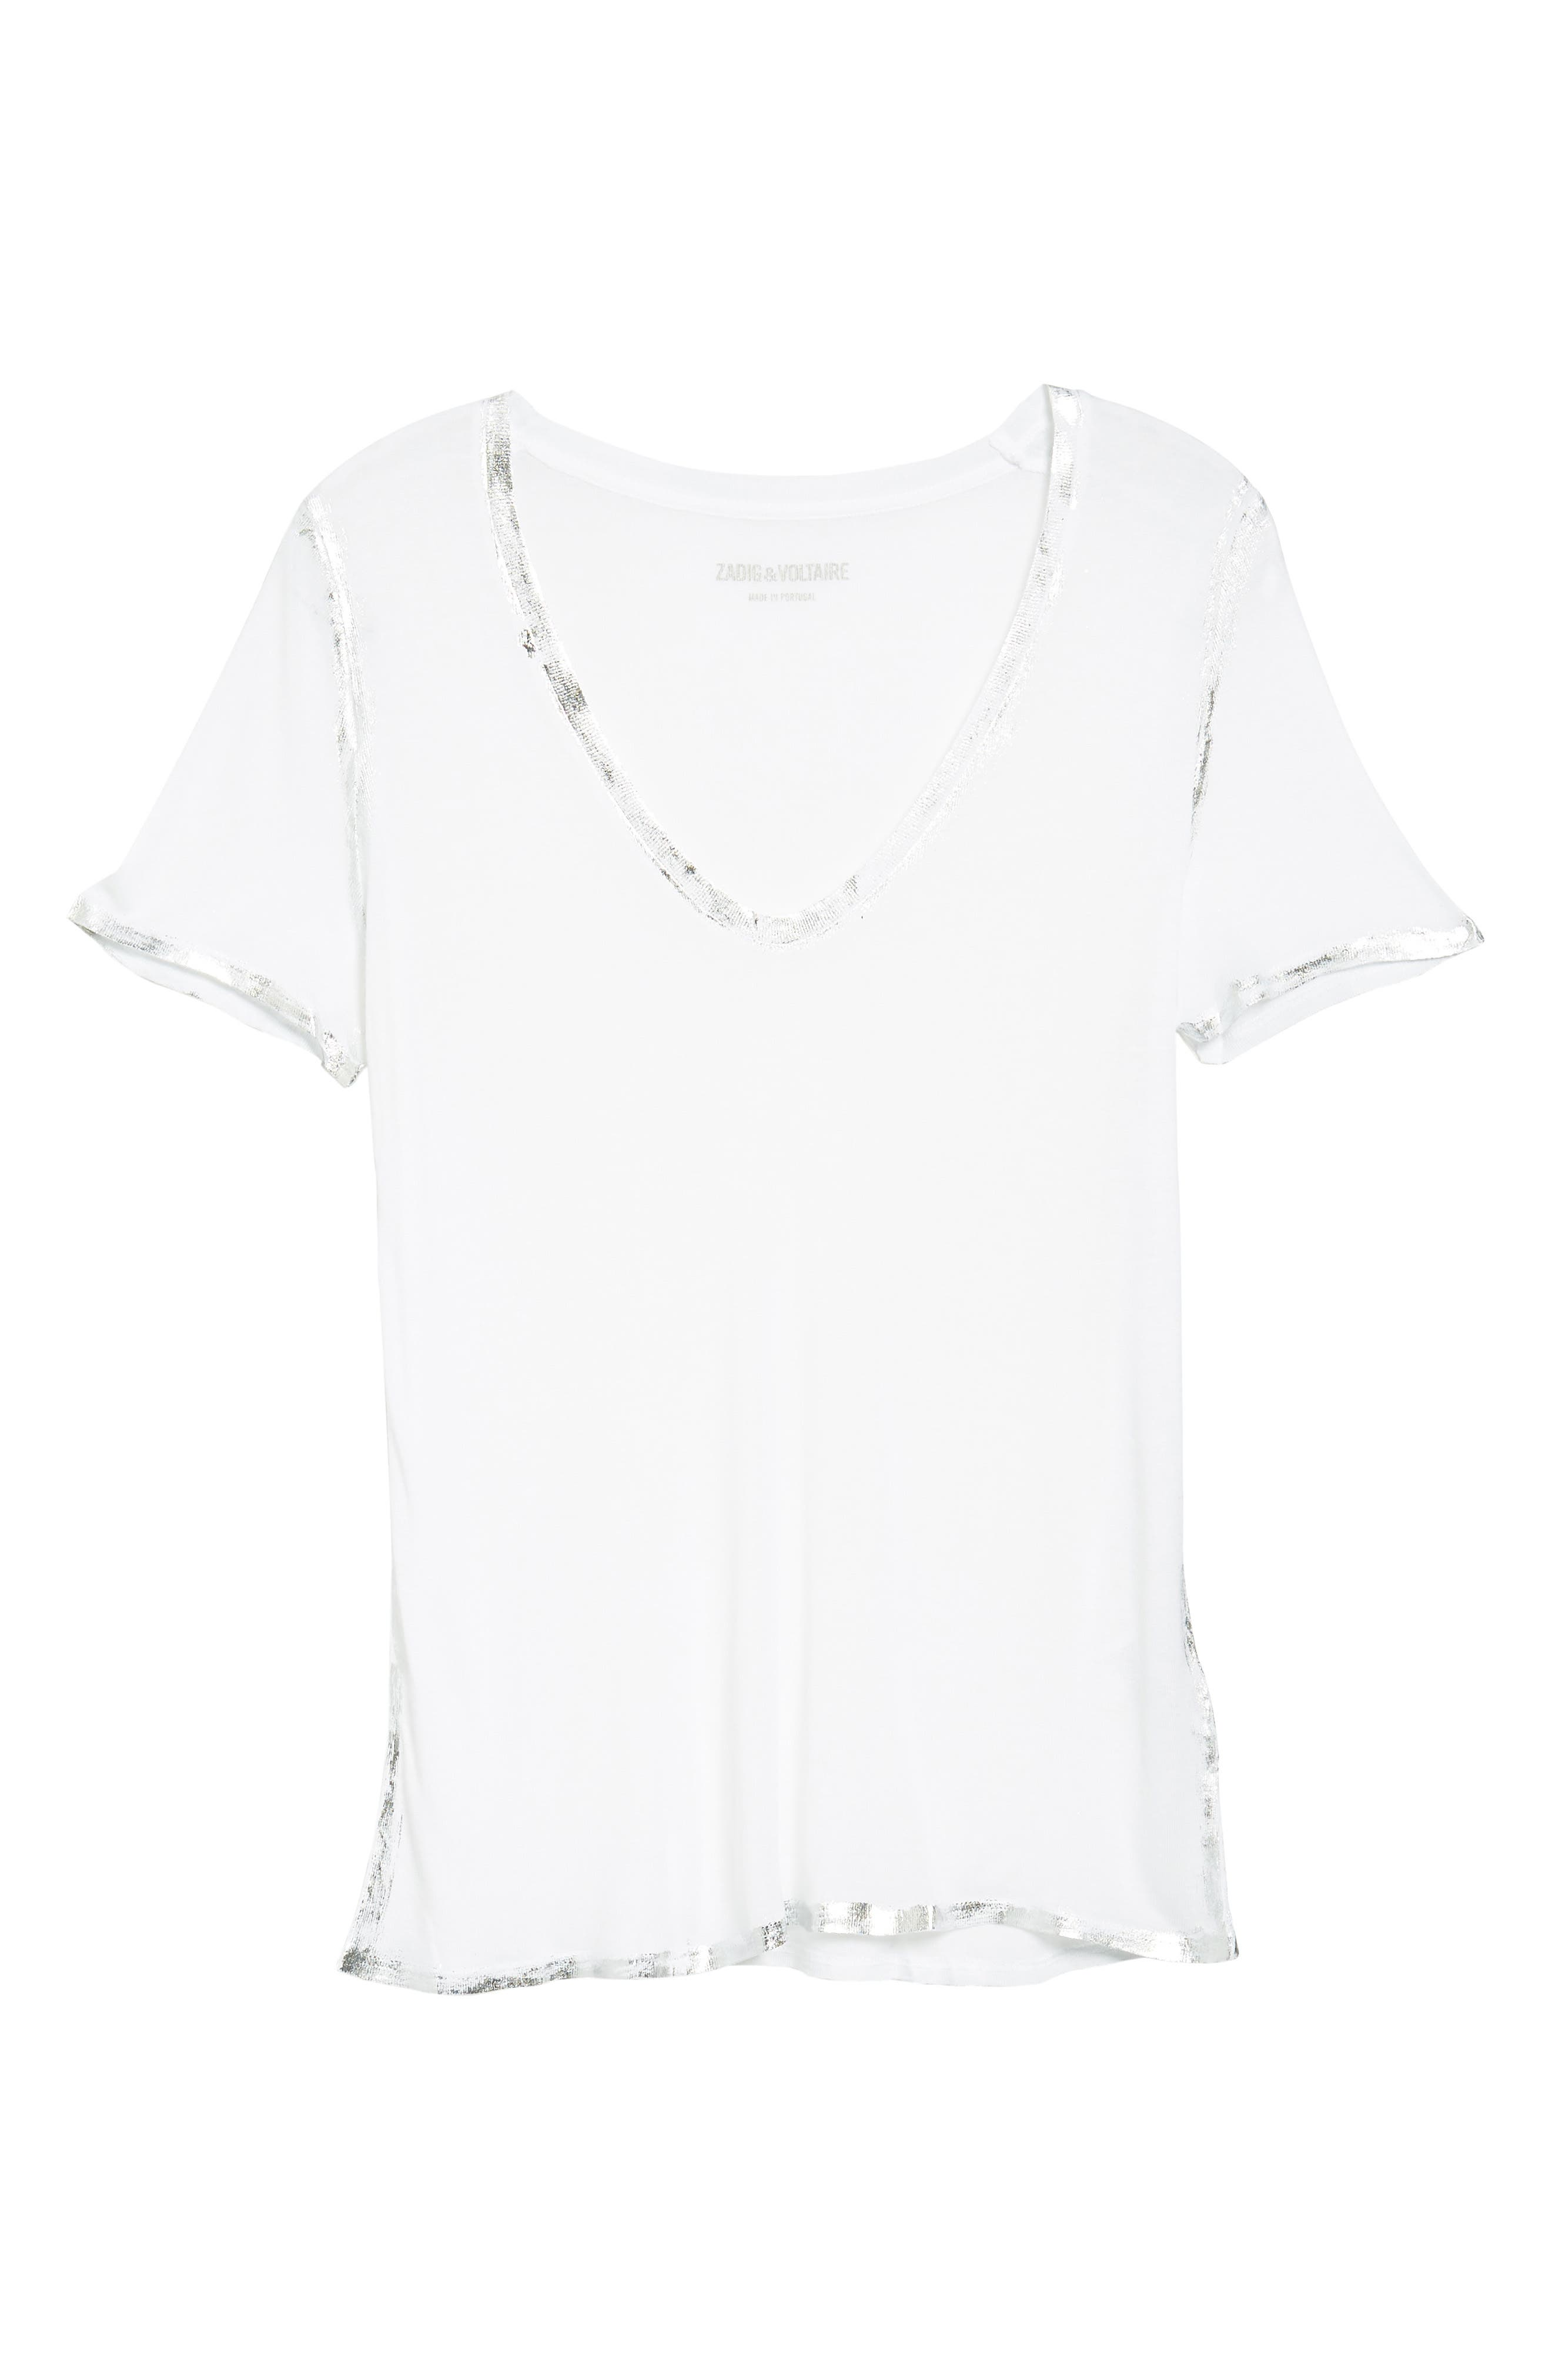 ZADIG & VOLTAIRE,                             'Tino' Foil Accent Tee,                             Main thumbnail 1, color,                             116